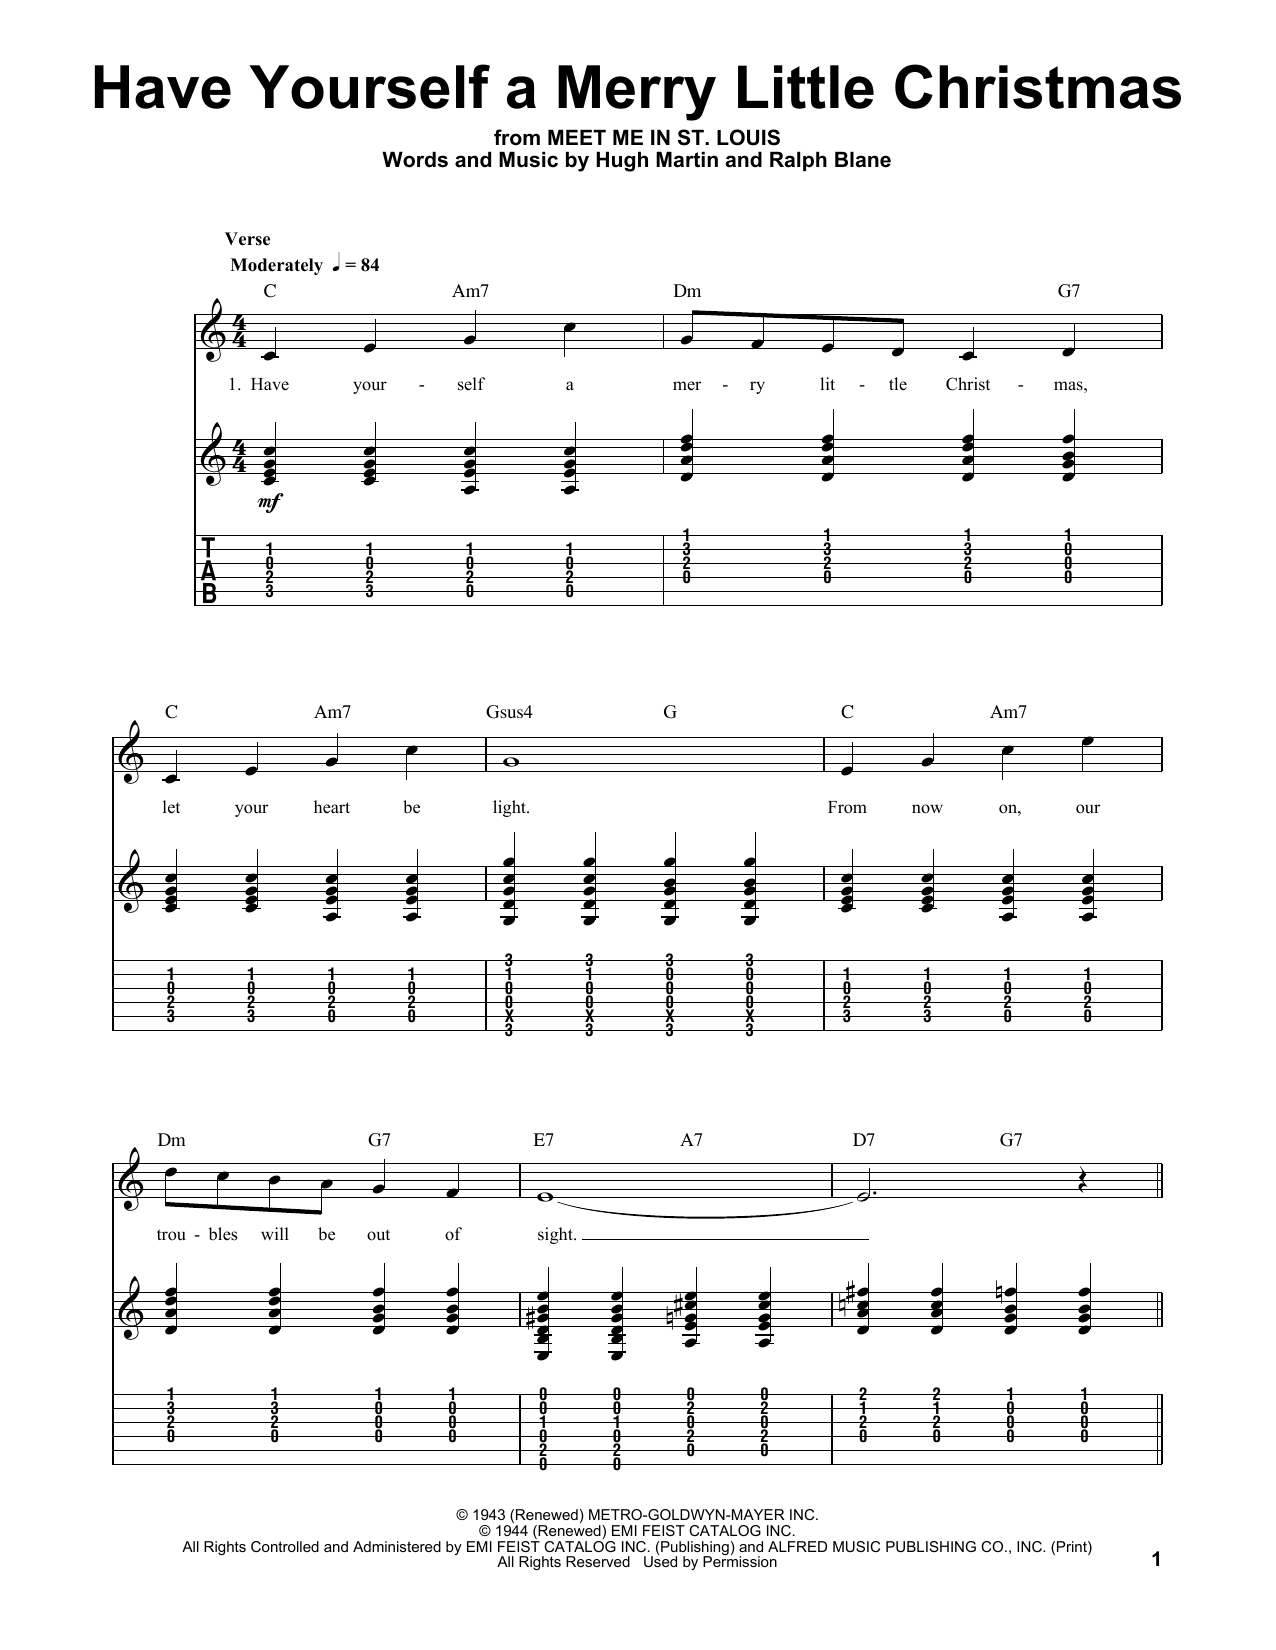 Have Yourself A Merry Little Christmas Chords Joe Nichols Have Yourself A Merry Little Christmas Sheet Music Notes Chords Download Printable Easy Guitar Tab Sku 92631